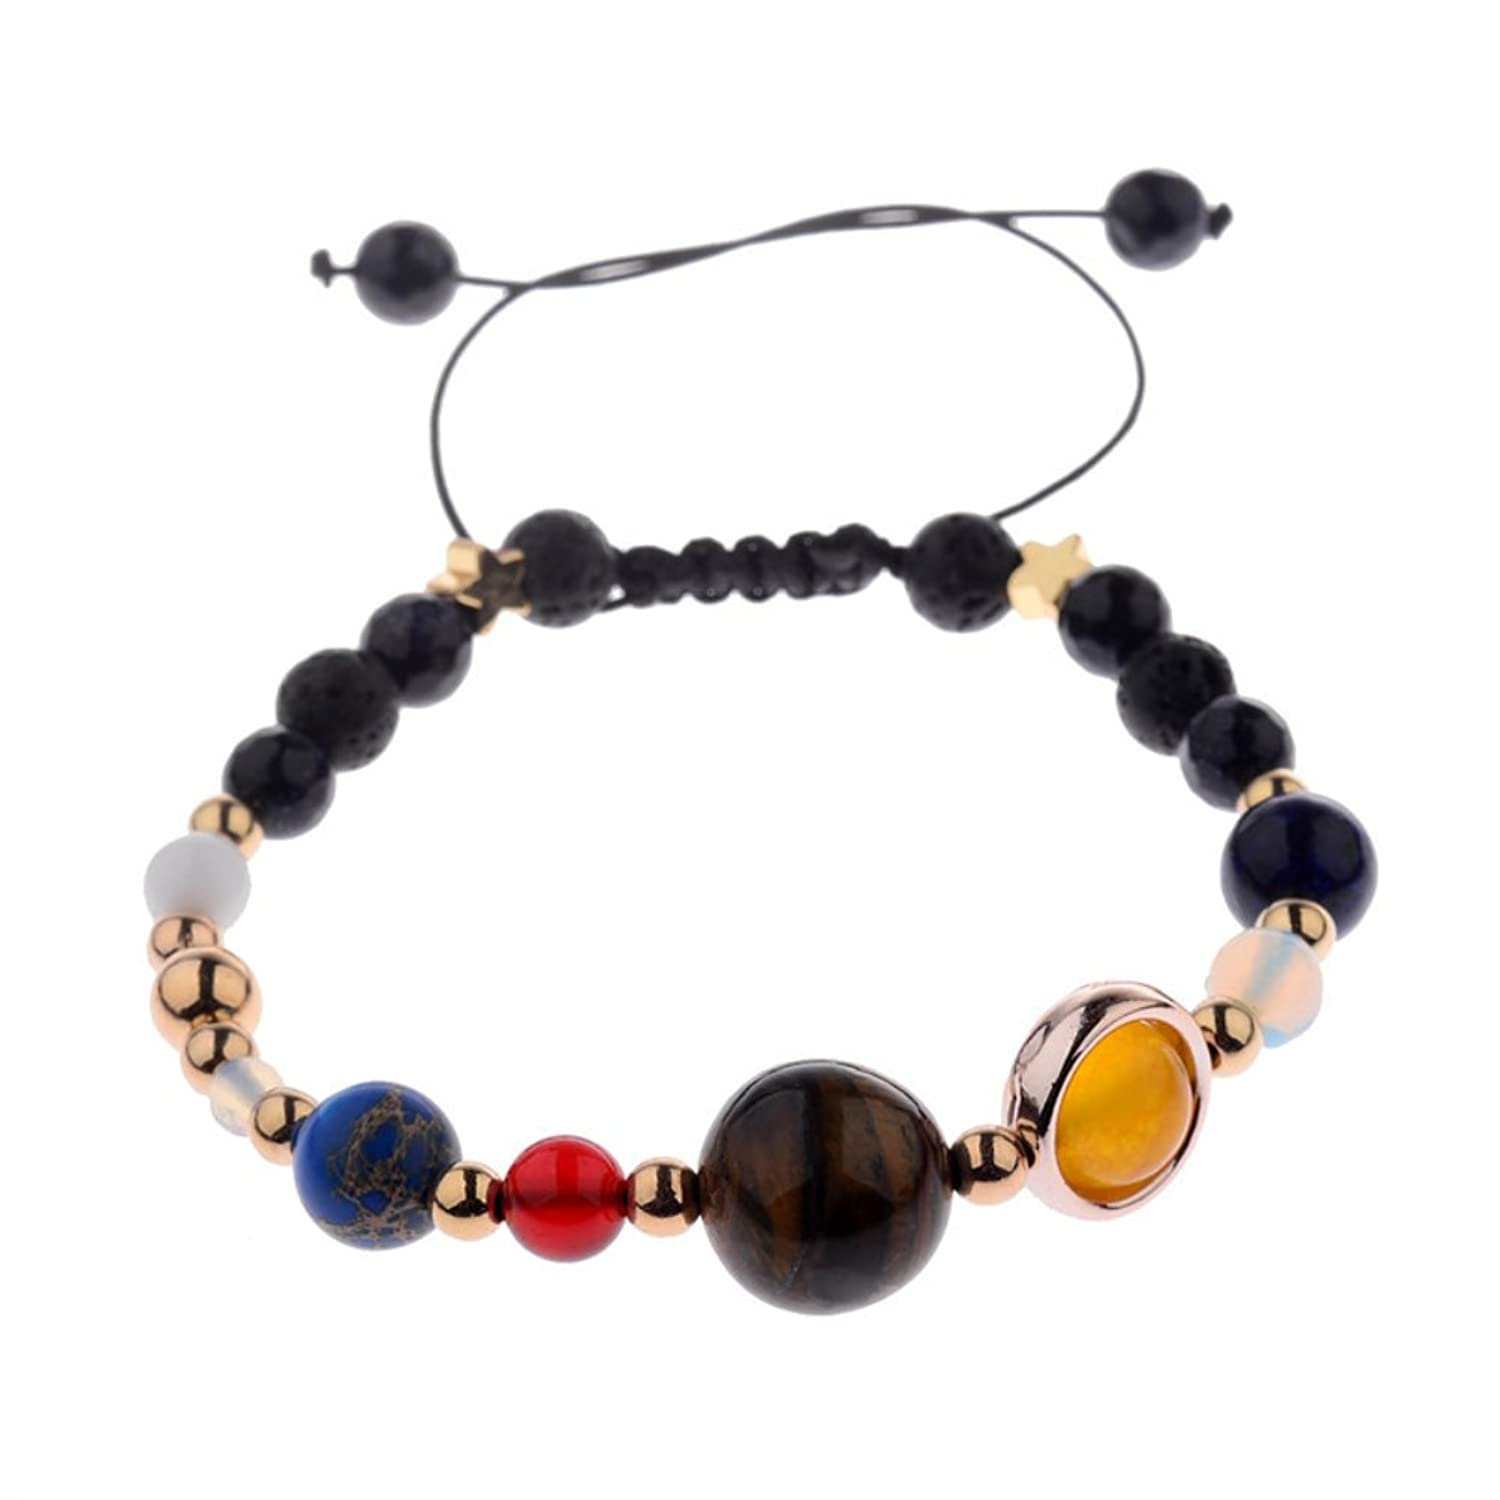 Solar System Universe Galaxy Nine Planets Guardian Star Natural Healing Stone Beads Stretch Bracelet for Women and Men